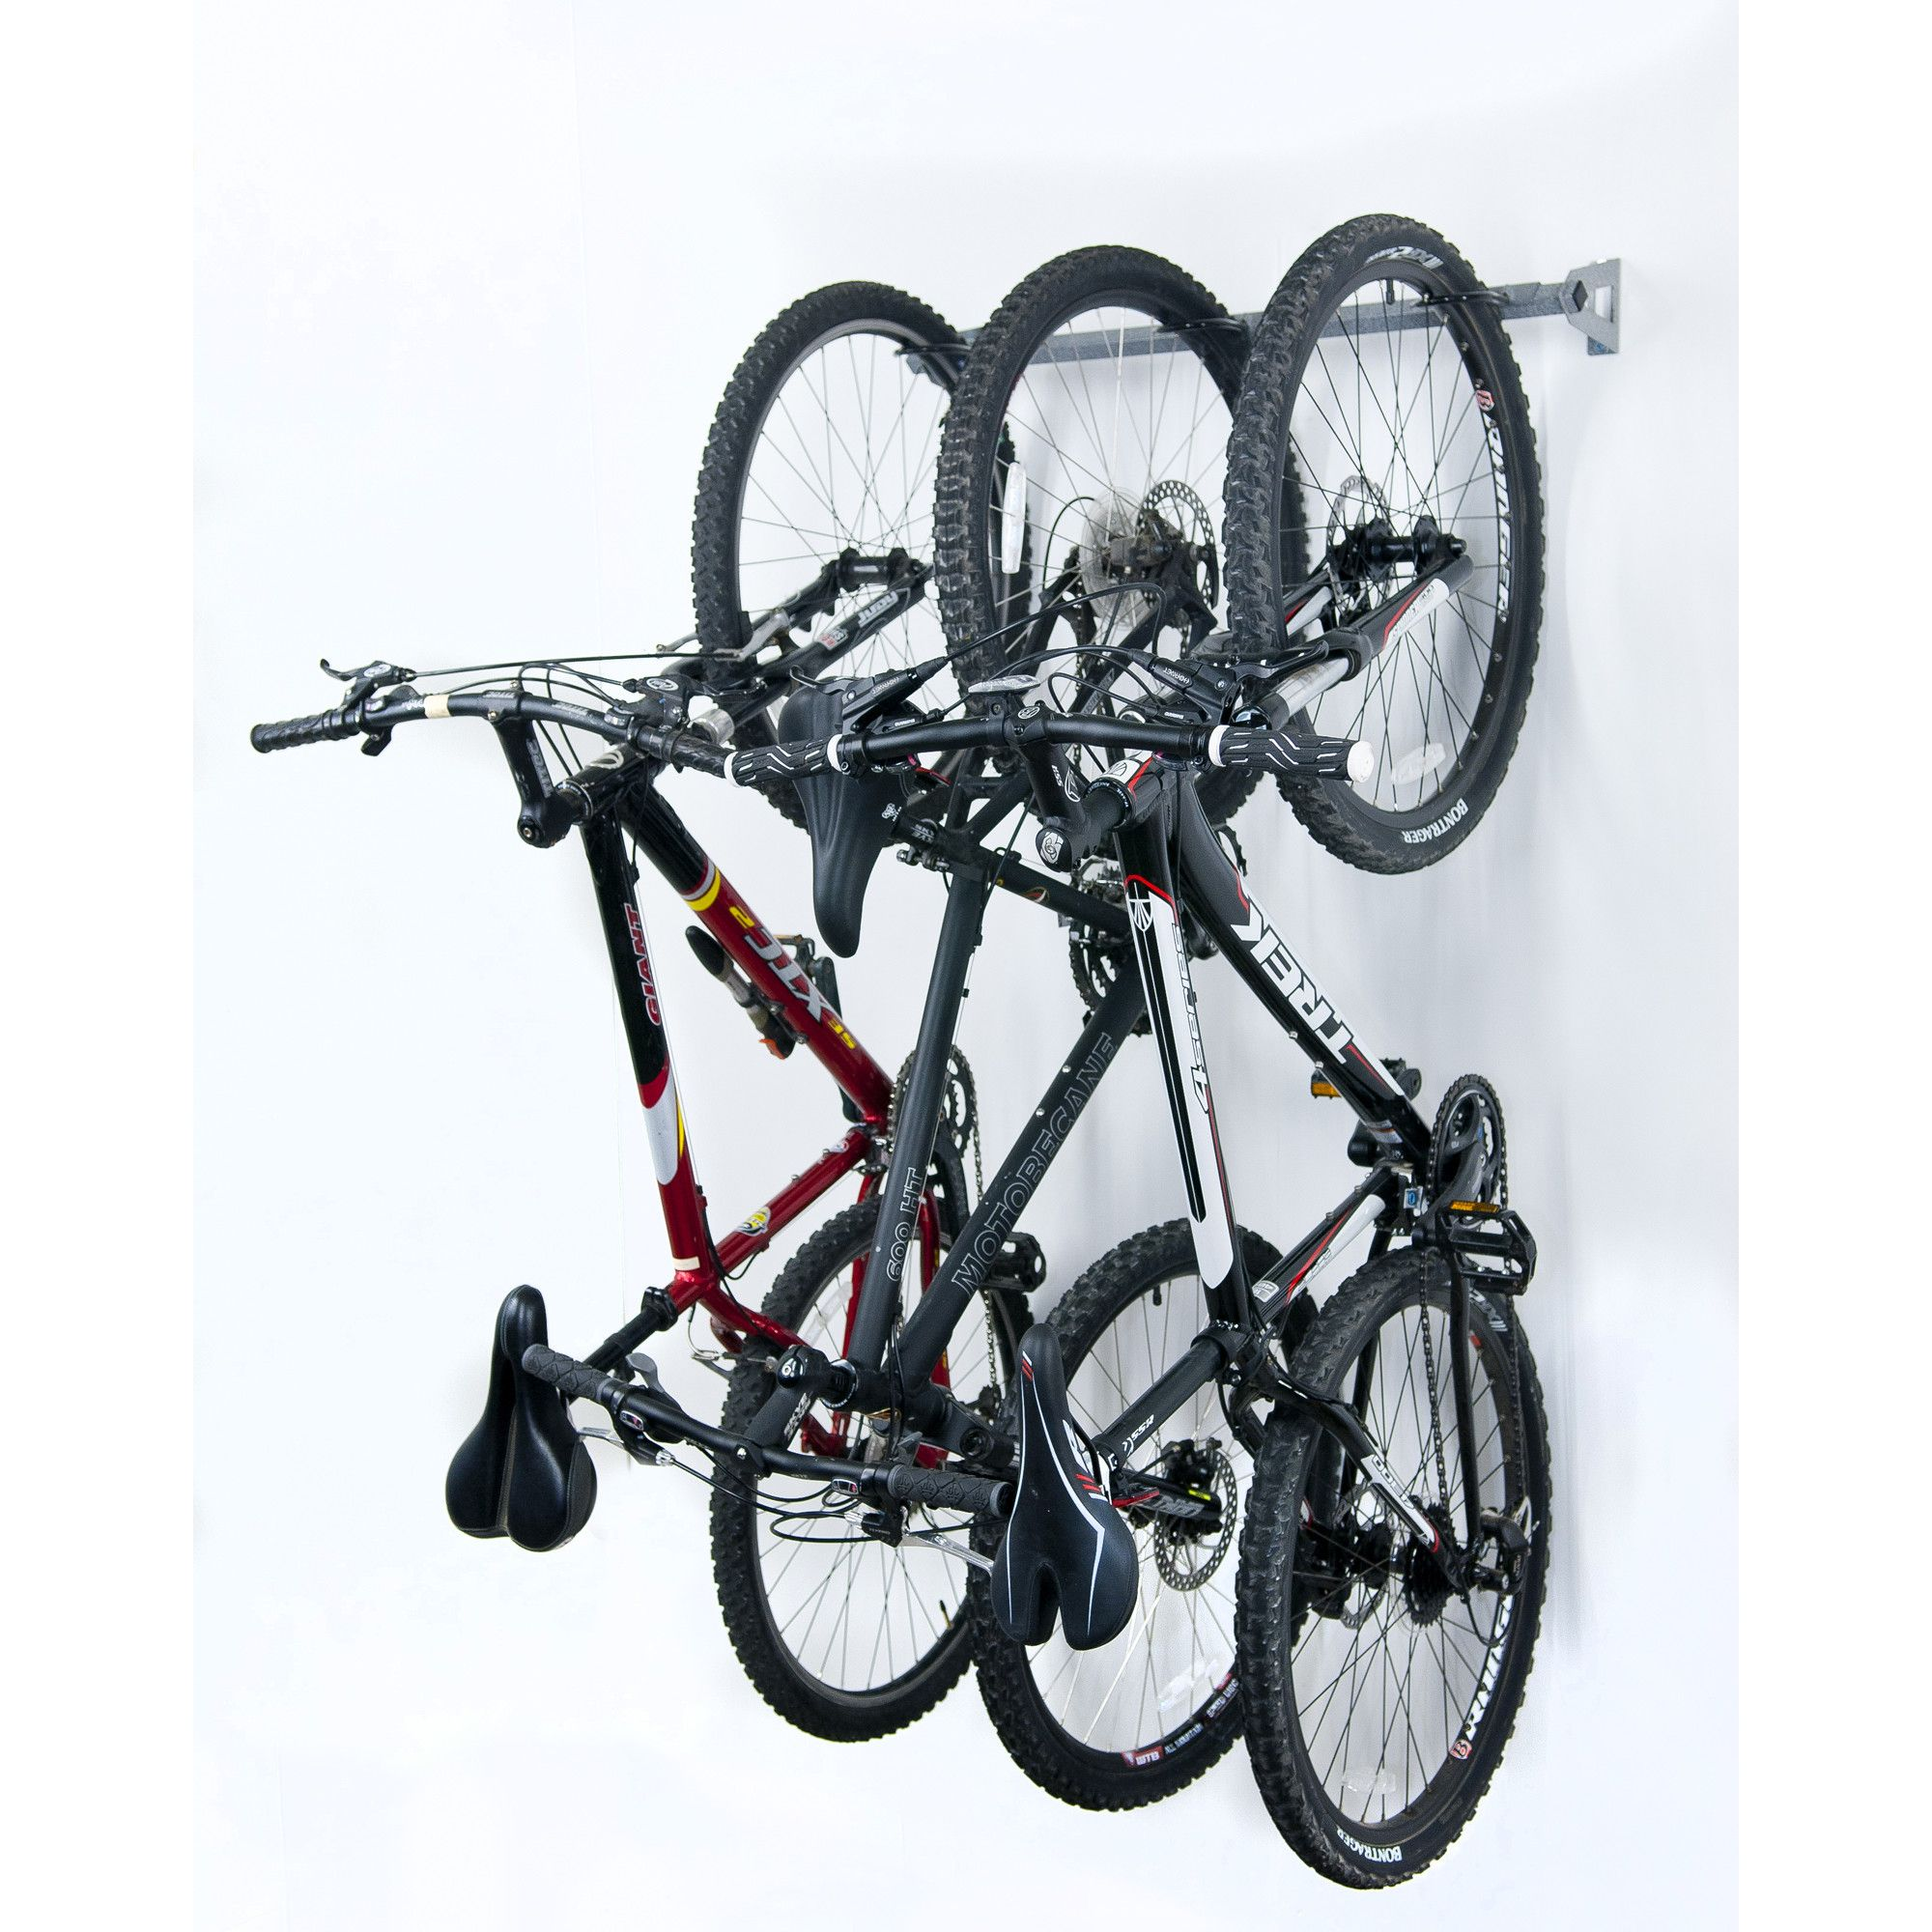 home great more your rack ideas bike with redesigns storage garage awesome uk